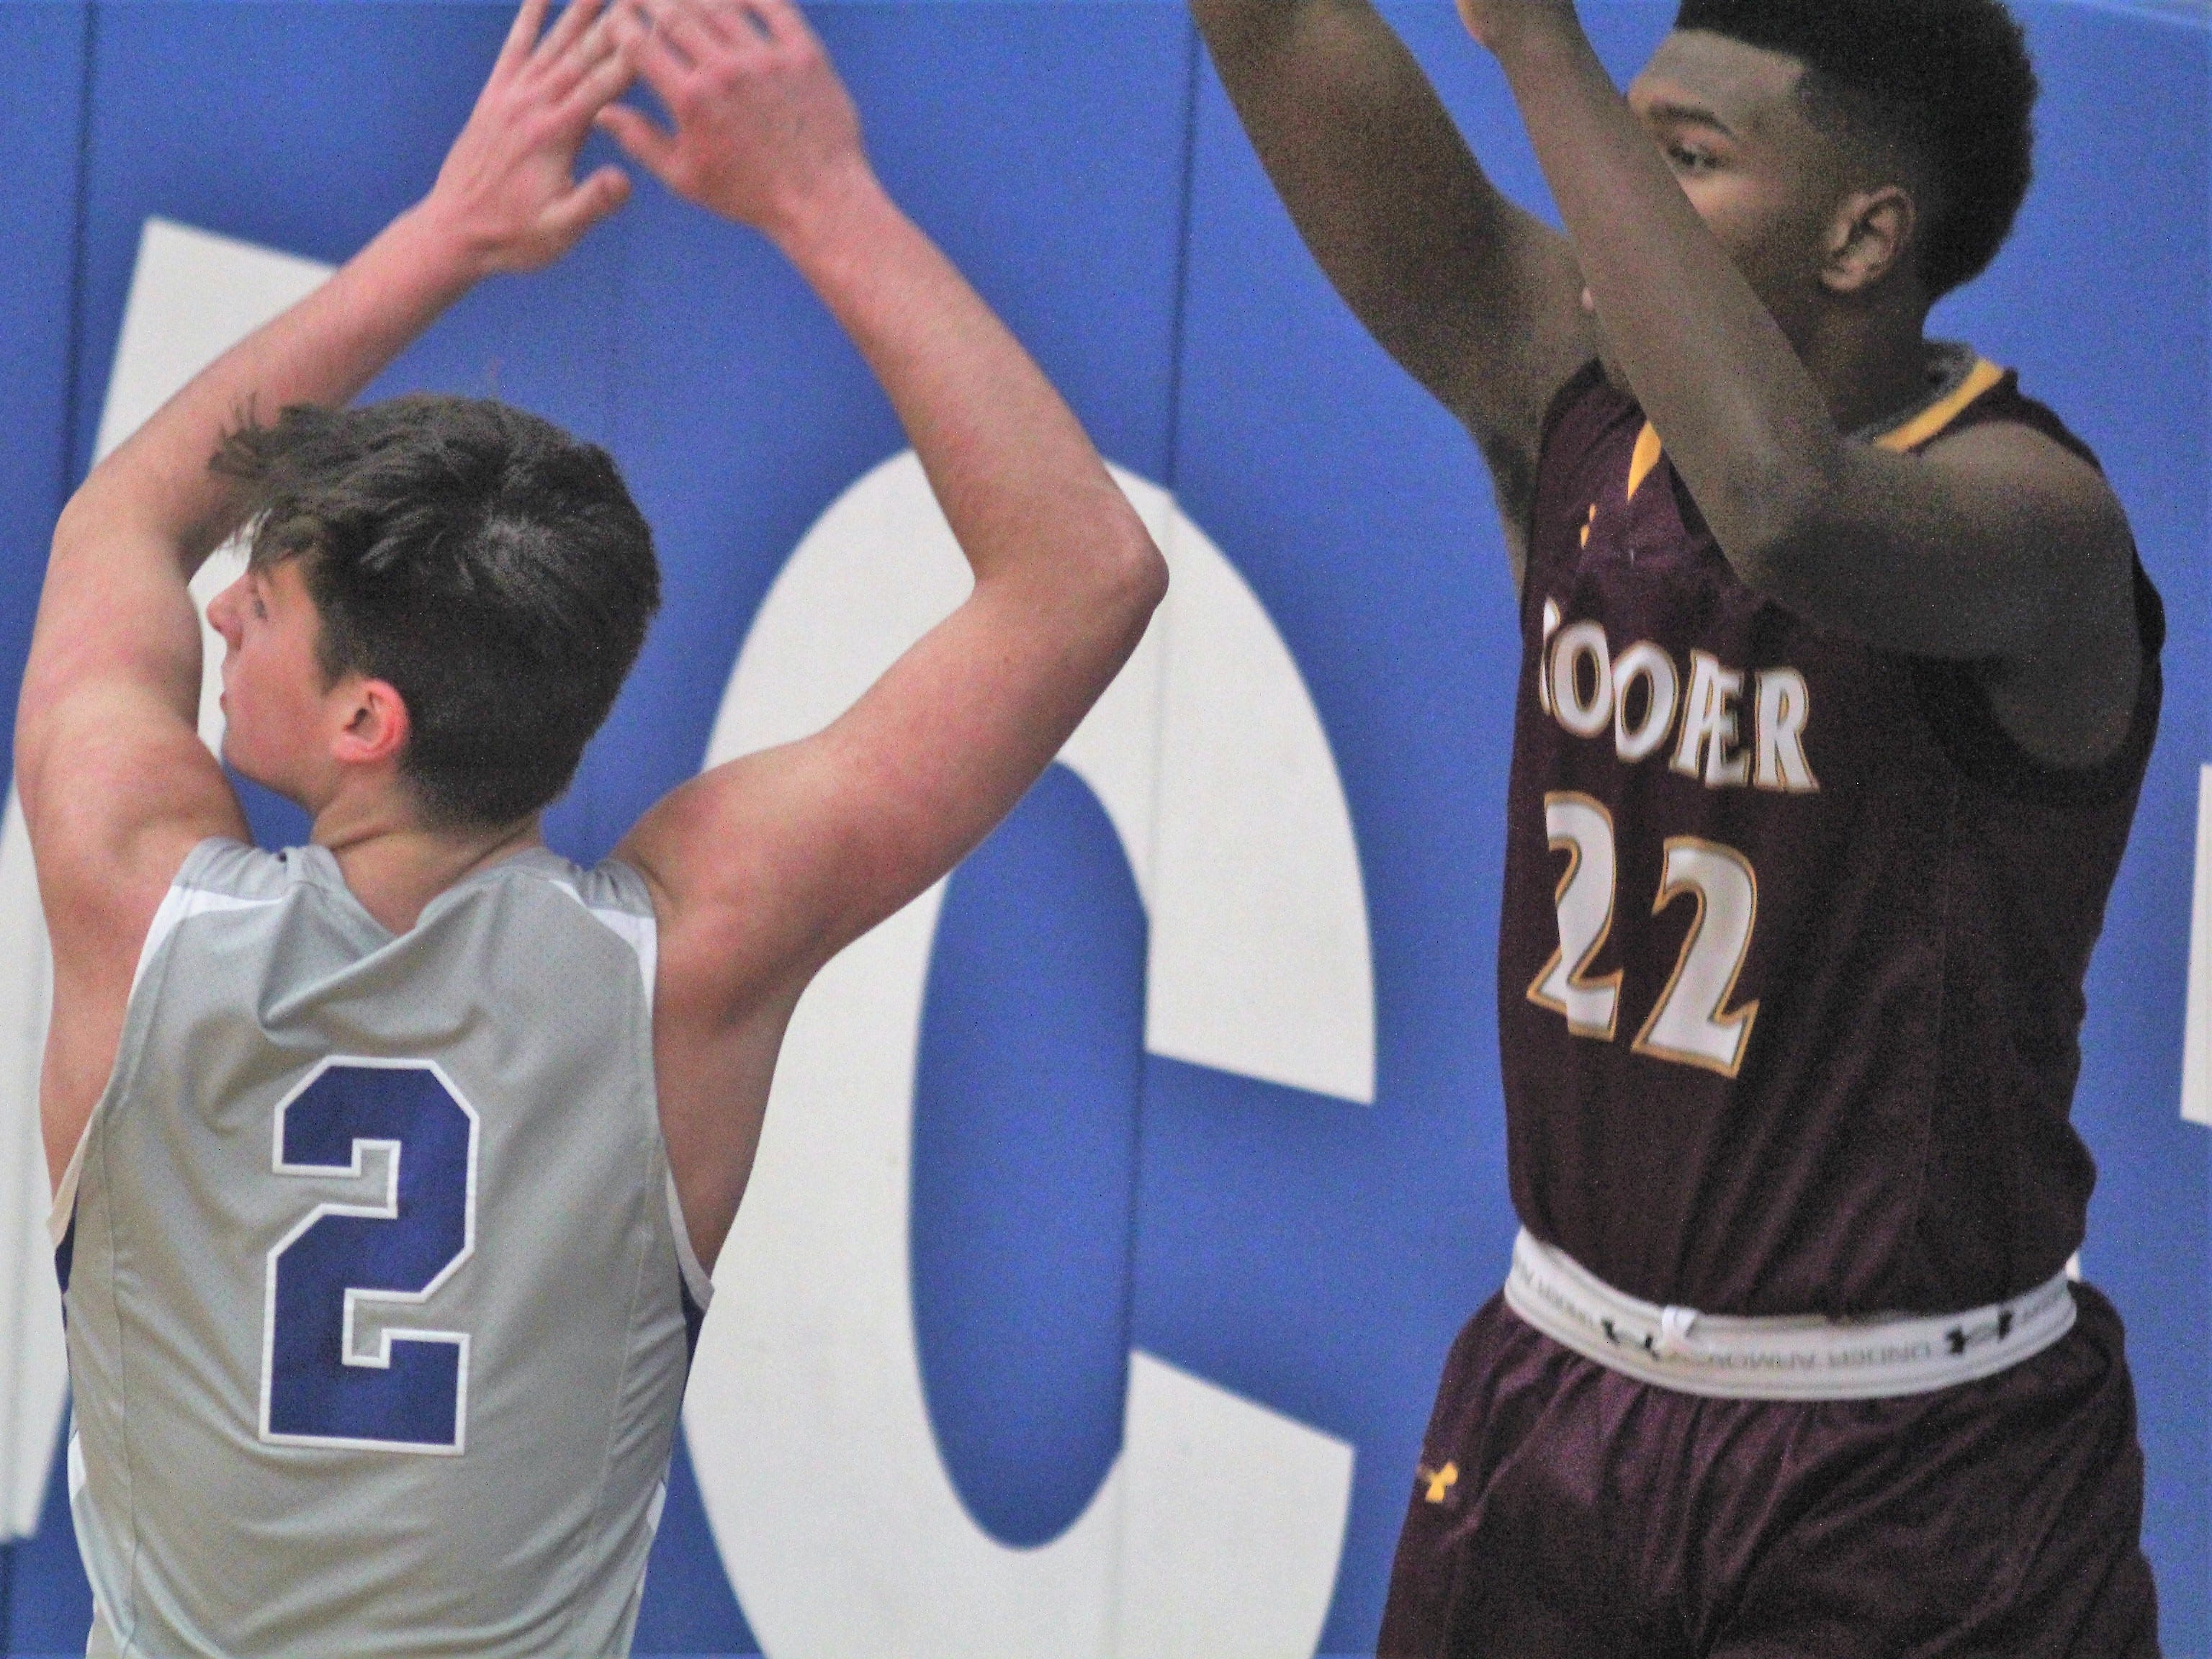 Cooper senior Michael Spencer inbounds over CovCath junior Grant Disken as Covington Catholic defeats Cooper 53-47 in boys basketball Jan. 11, 2019 at CovCath.